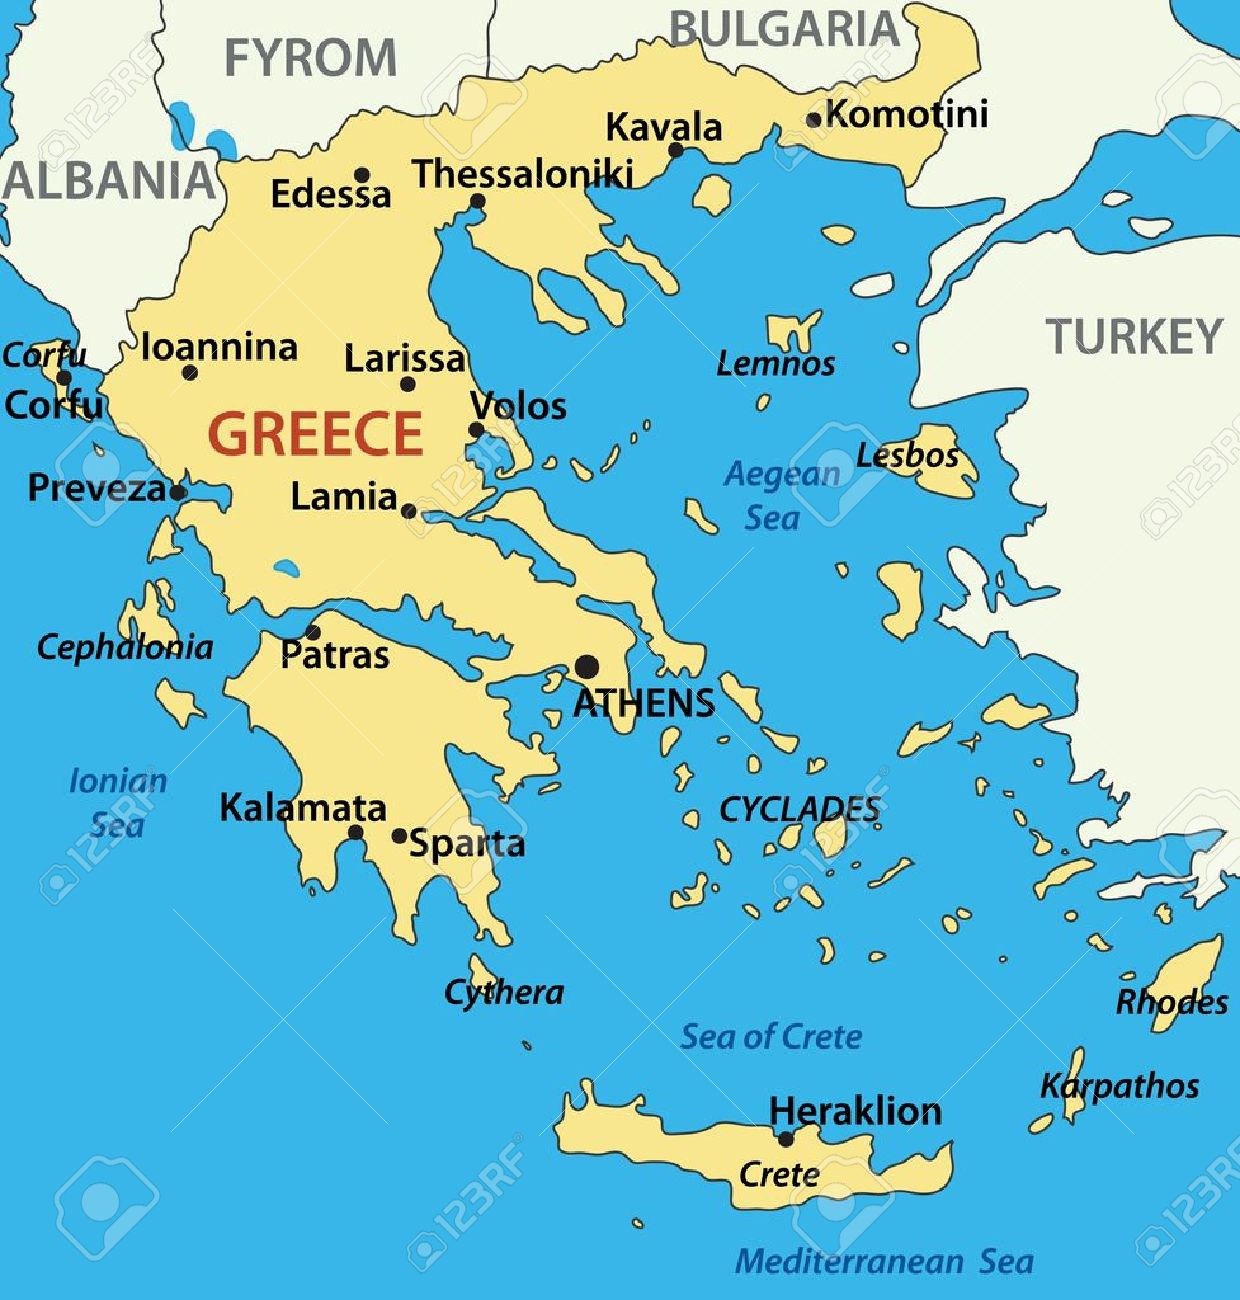 map of Greece - vector illustration Map Greece on ionian sea map, crete map, czech republic map, australia map, ireland map, rome map, france map, sparta map, turkey map, belgium map, poland map, sri lanka map, austria map, serbia map, peru map, germany map, europe map, africa map, portugal map, china map, greek map, japan map, iceland map, mediterranean map, norway map, united kingdom map, spain map, england map, cyprus map, canada map, denmark map, india map, italy map,